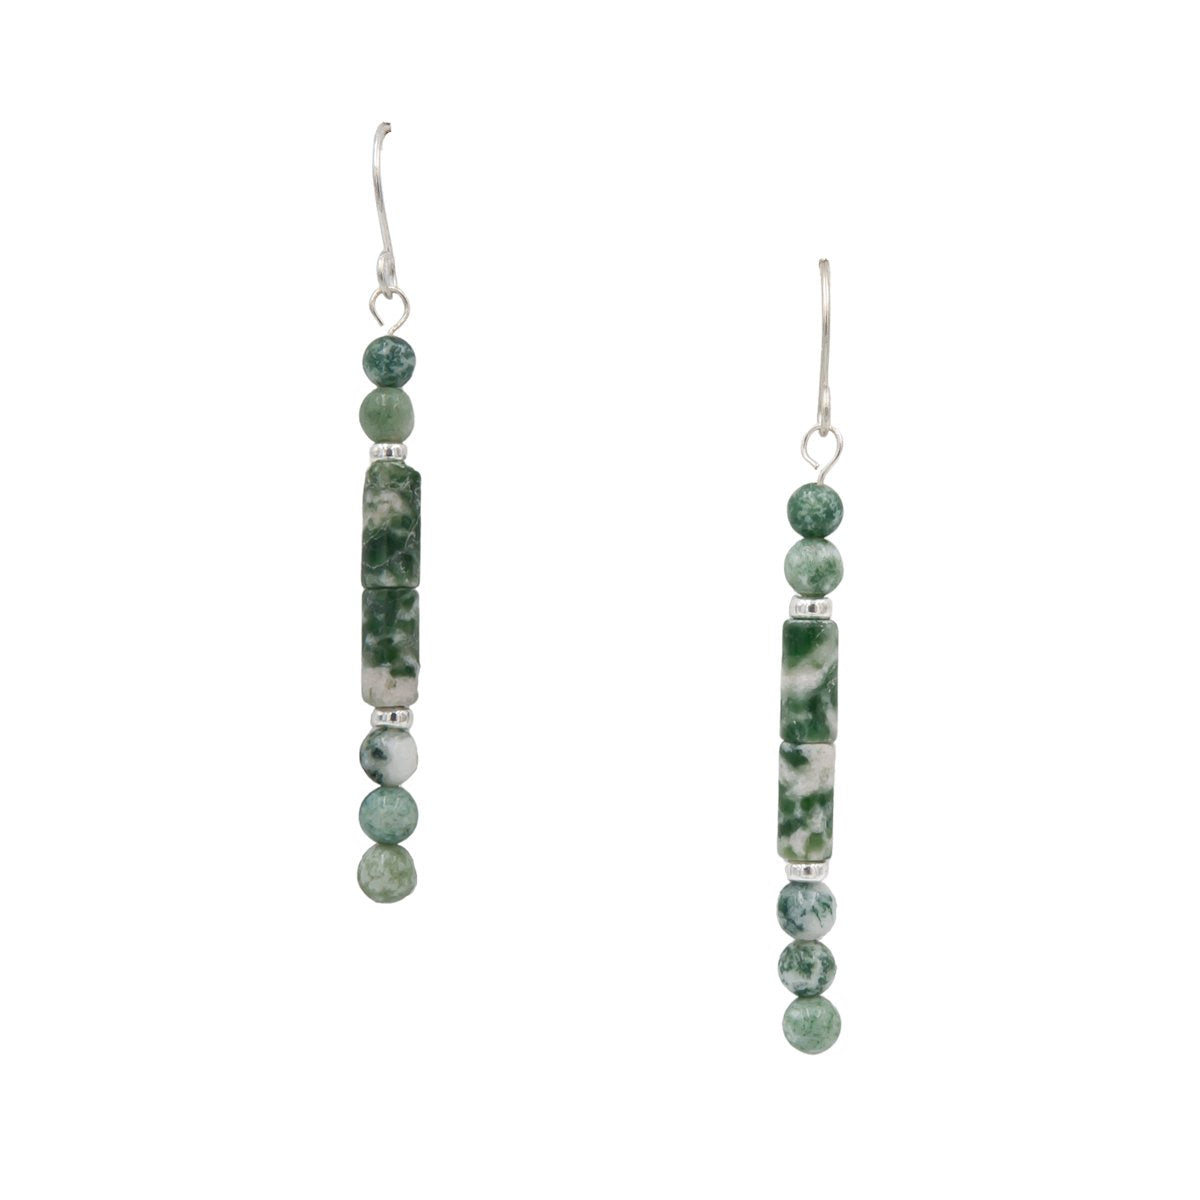 Sterling silver tree agate handmade earrings